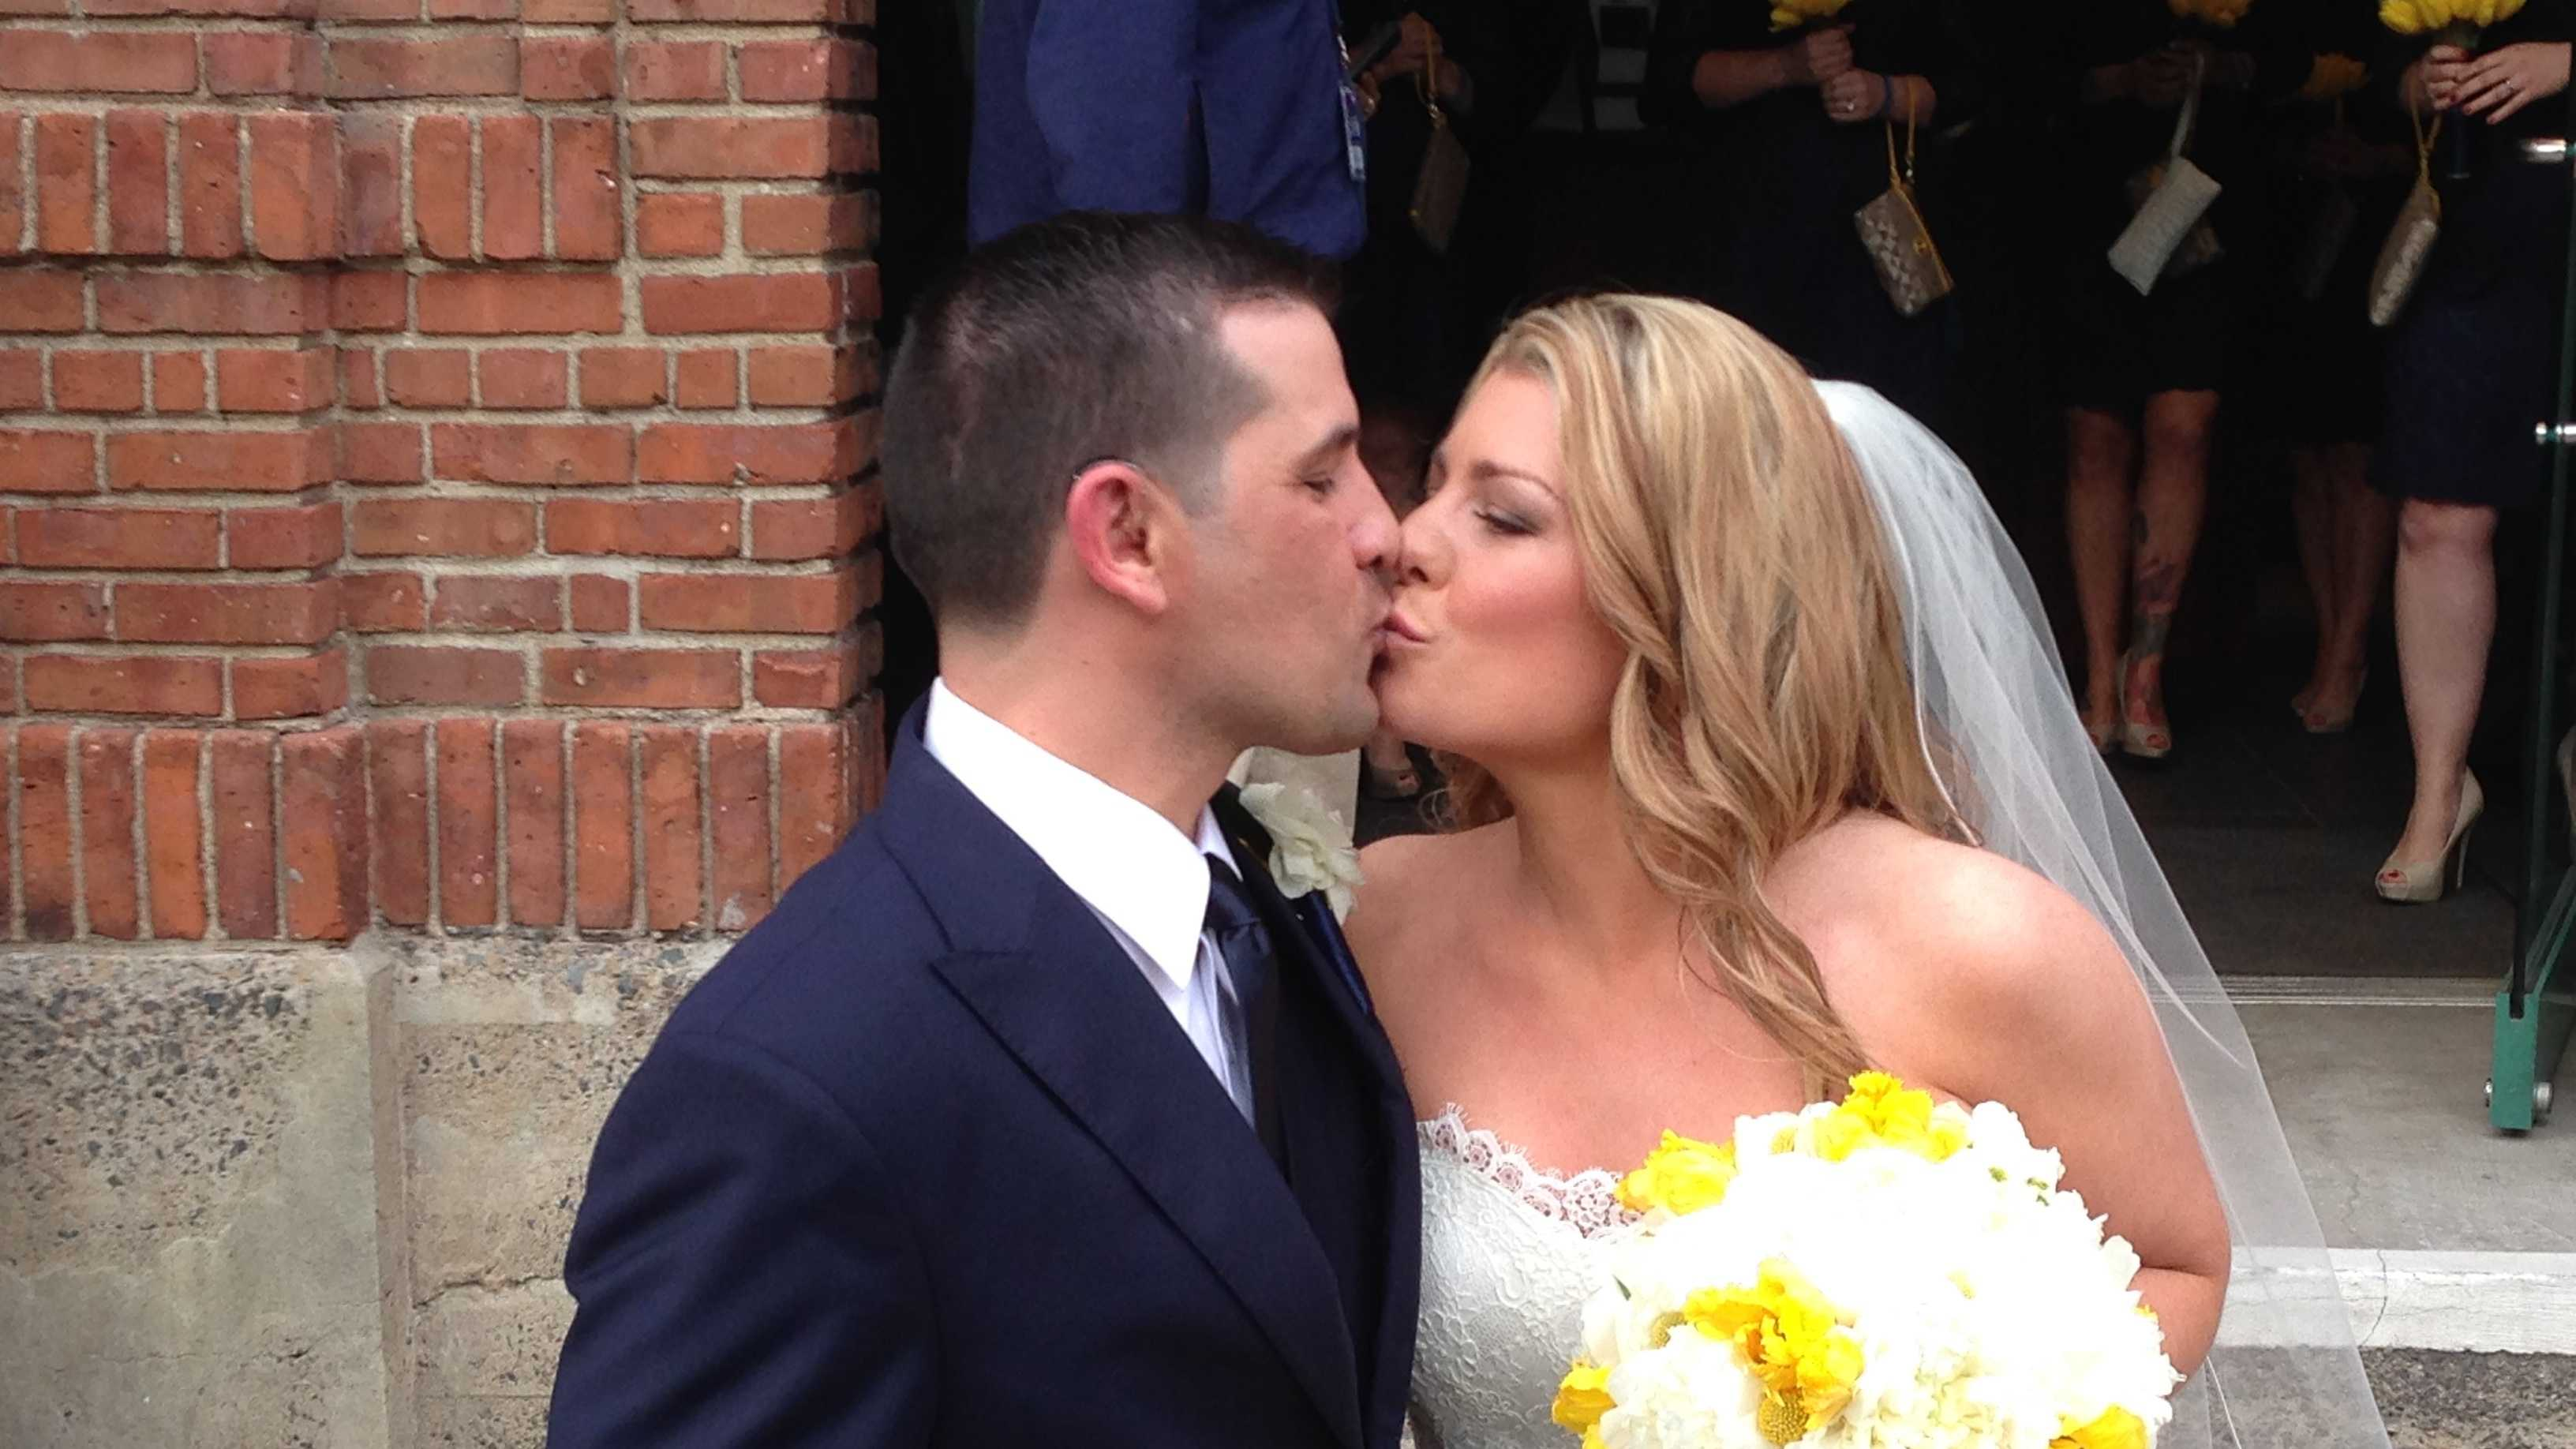 The pair has been engaged for 7 years. They pose outside Fenway Park for a kiss.